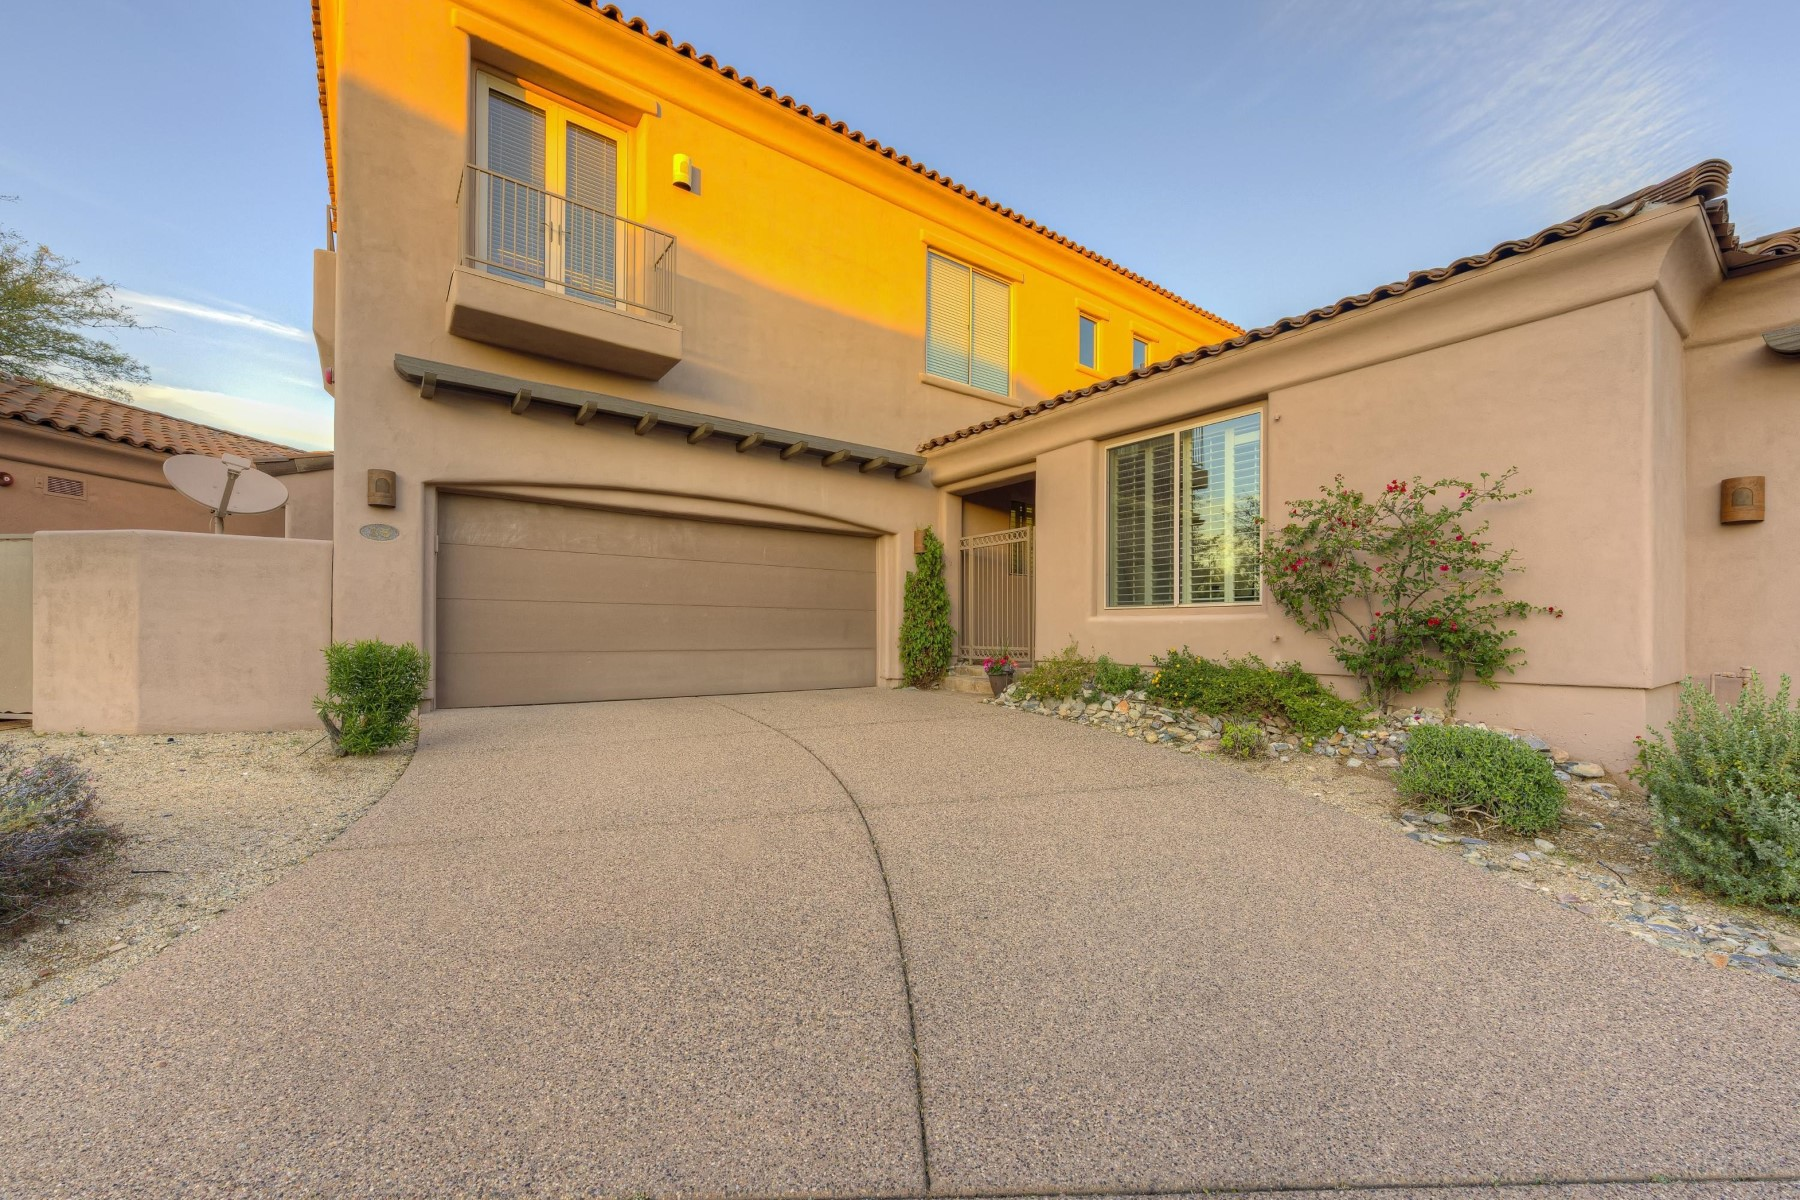 sales property at Stunning soft contemporary in one of the most conveyed communities in Scottsdale